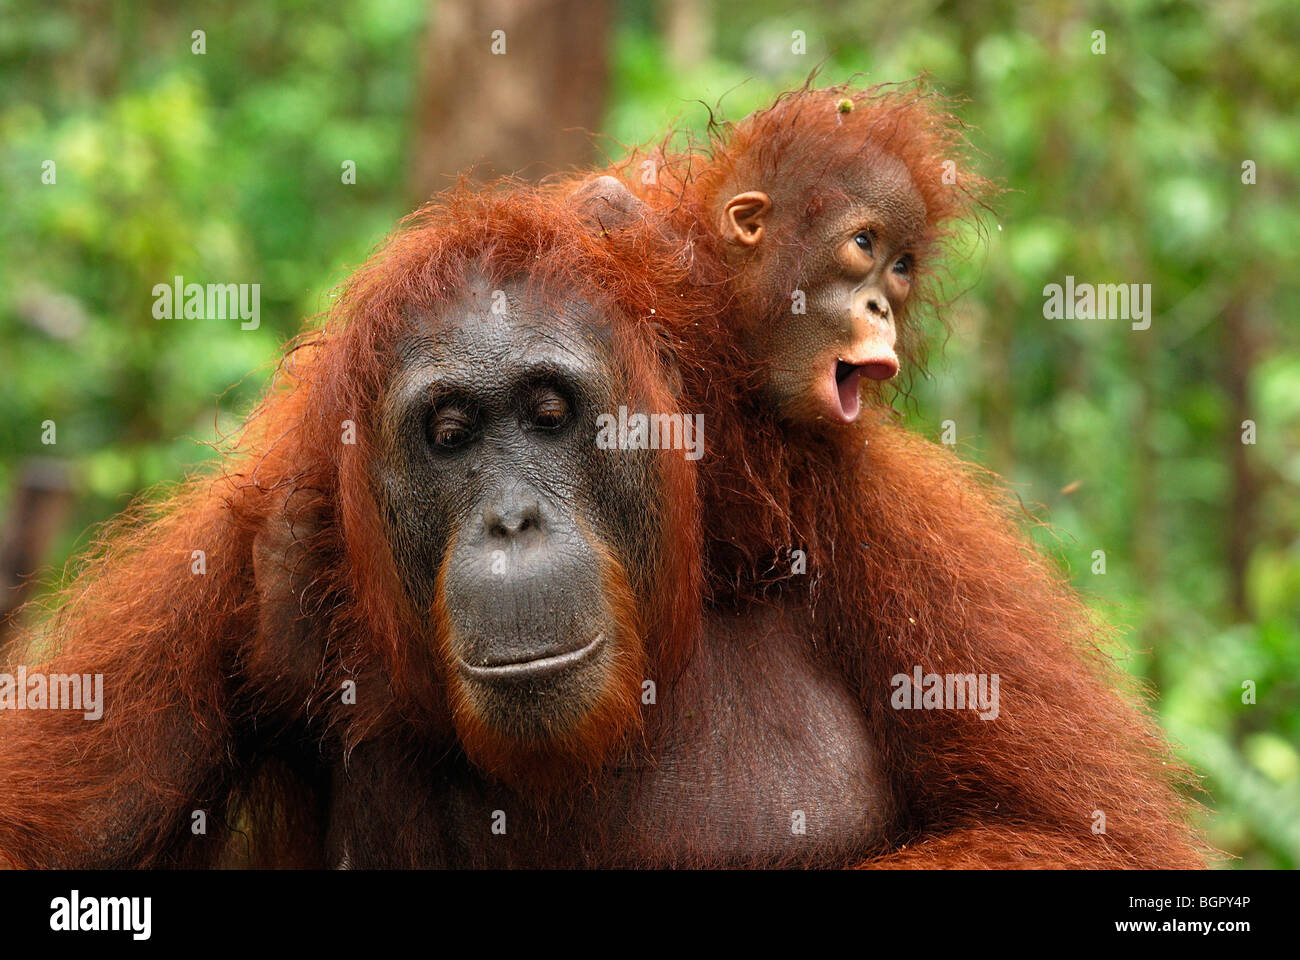 Borneo Orangutan (Pongo pygmaeus), female with its baby riding on its back, Kalimantan, Borneo, Indonesia - Stock Image